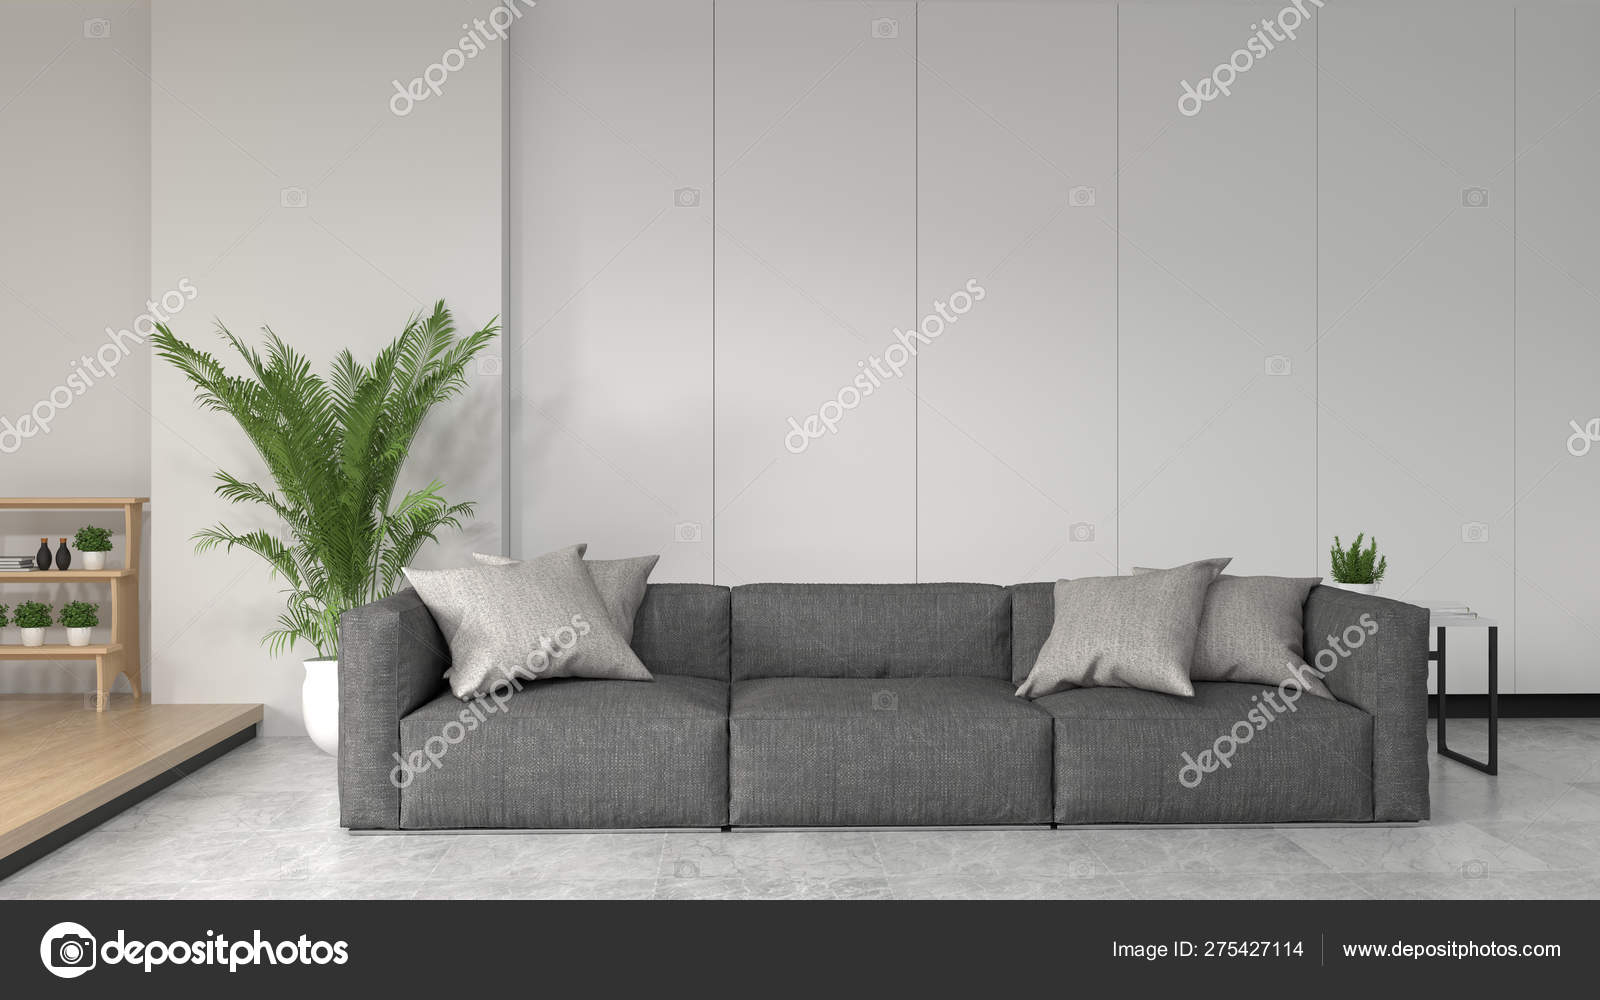 Sofa Front Simple White Wall Decorative Items Empty Room Open Stock Photo C 7966cherry 275427114